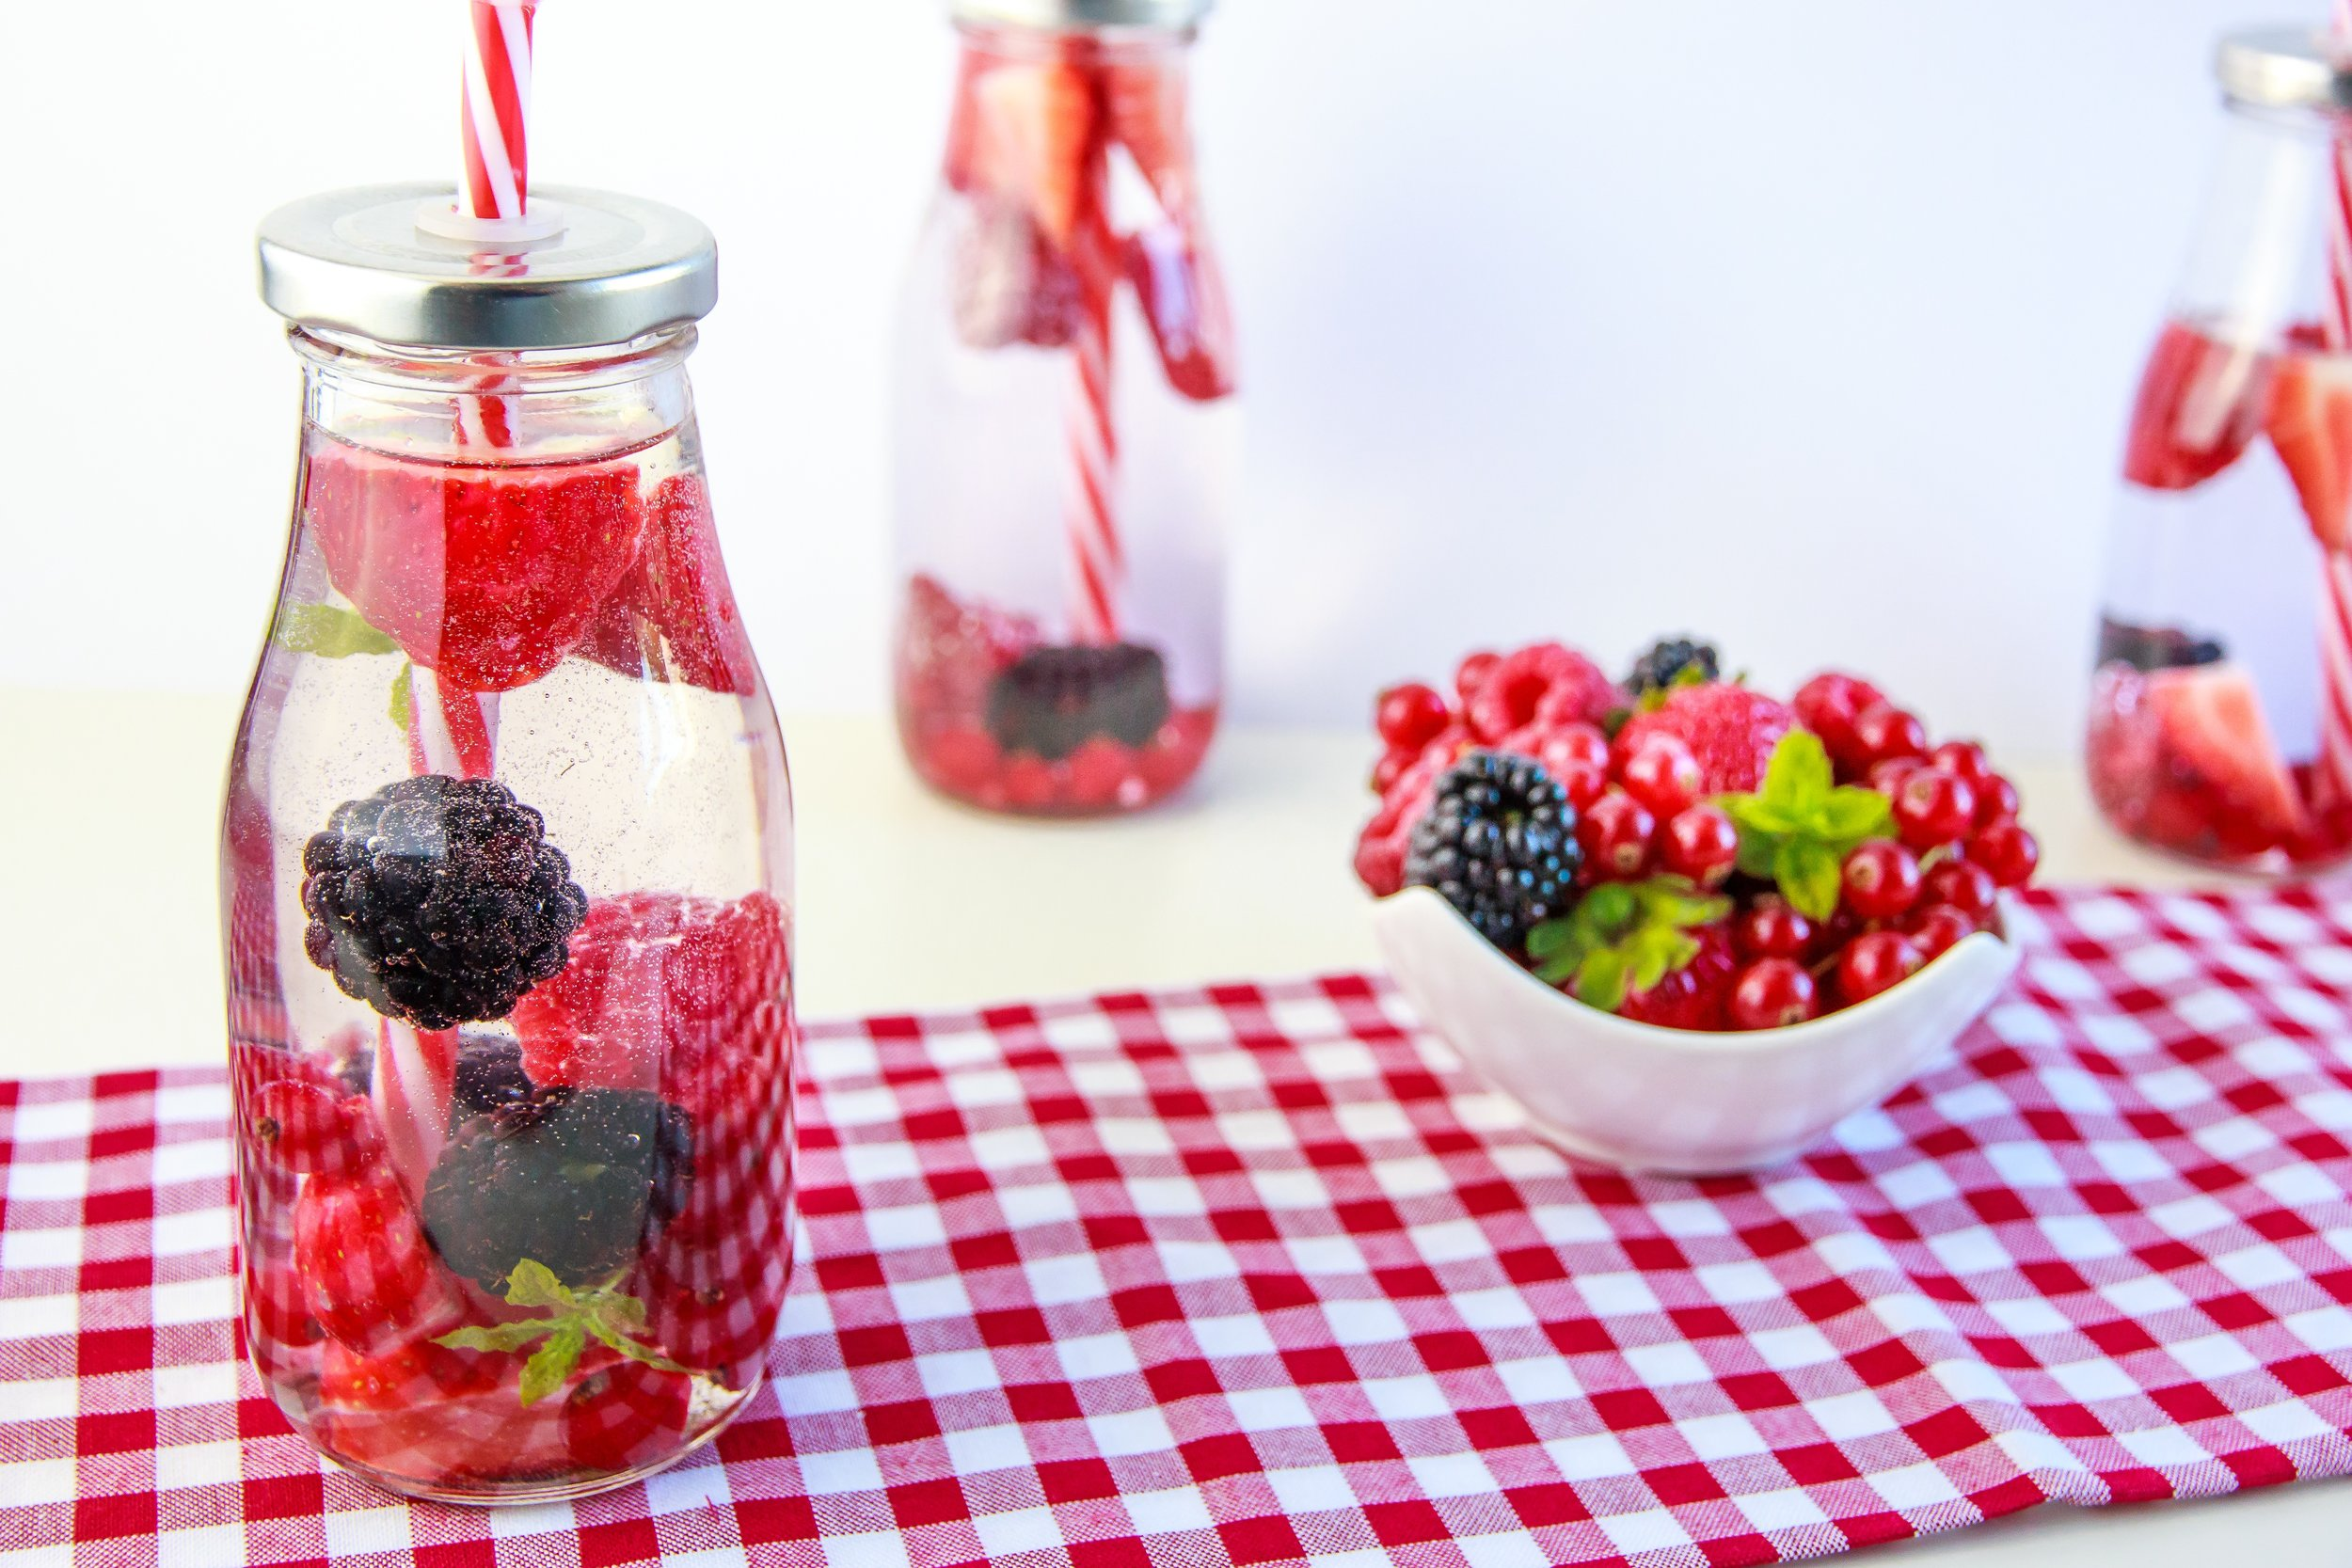 berries-erfrischungsgetrank-drink-healthy-162841.jpeg